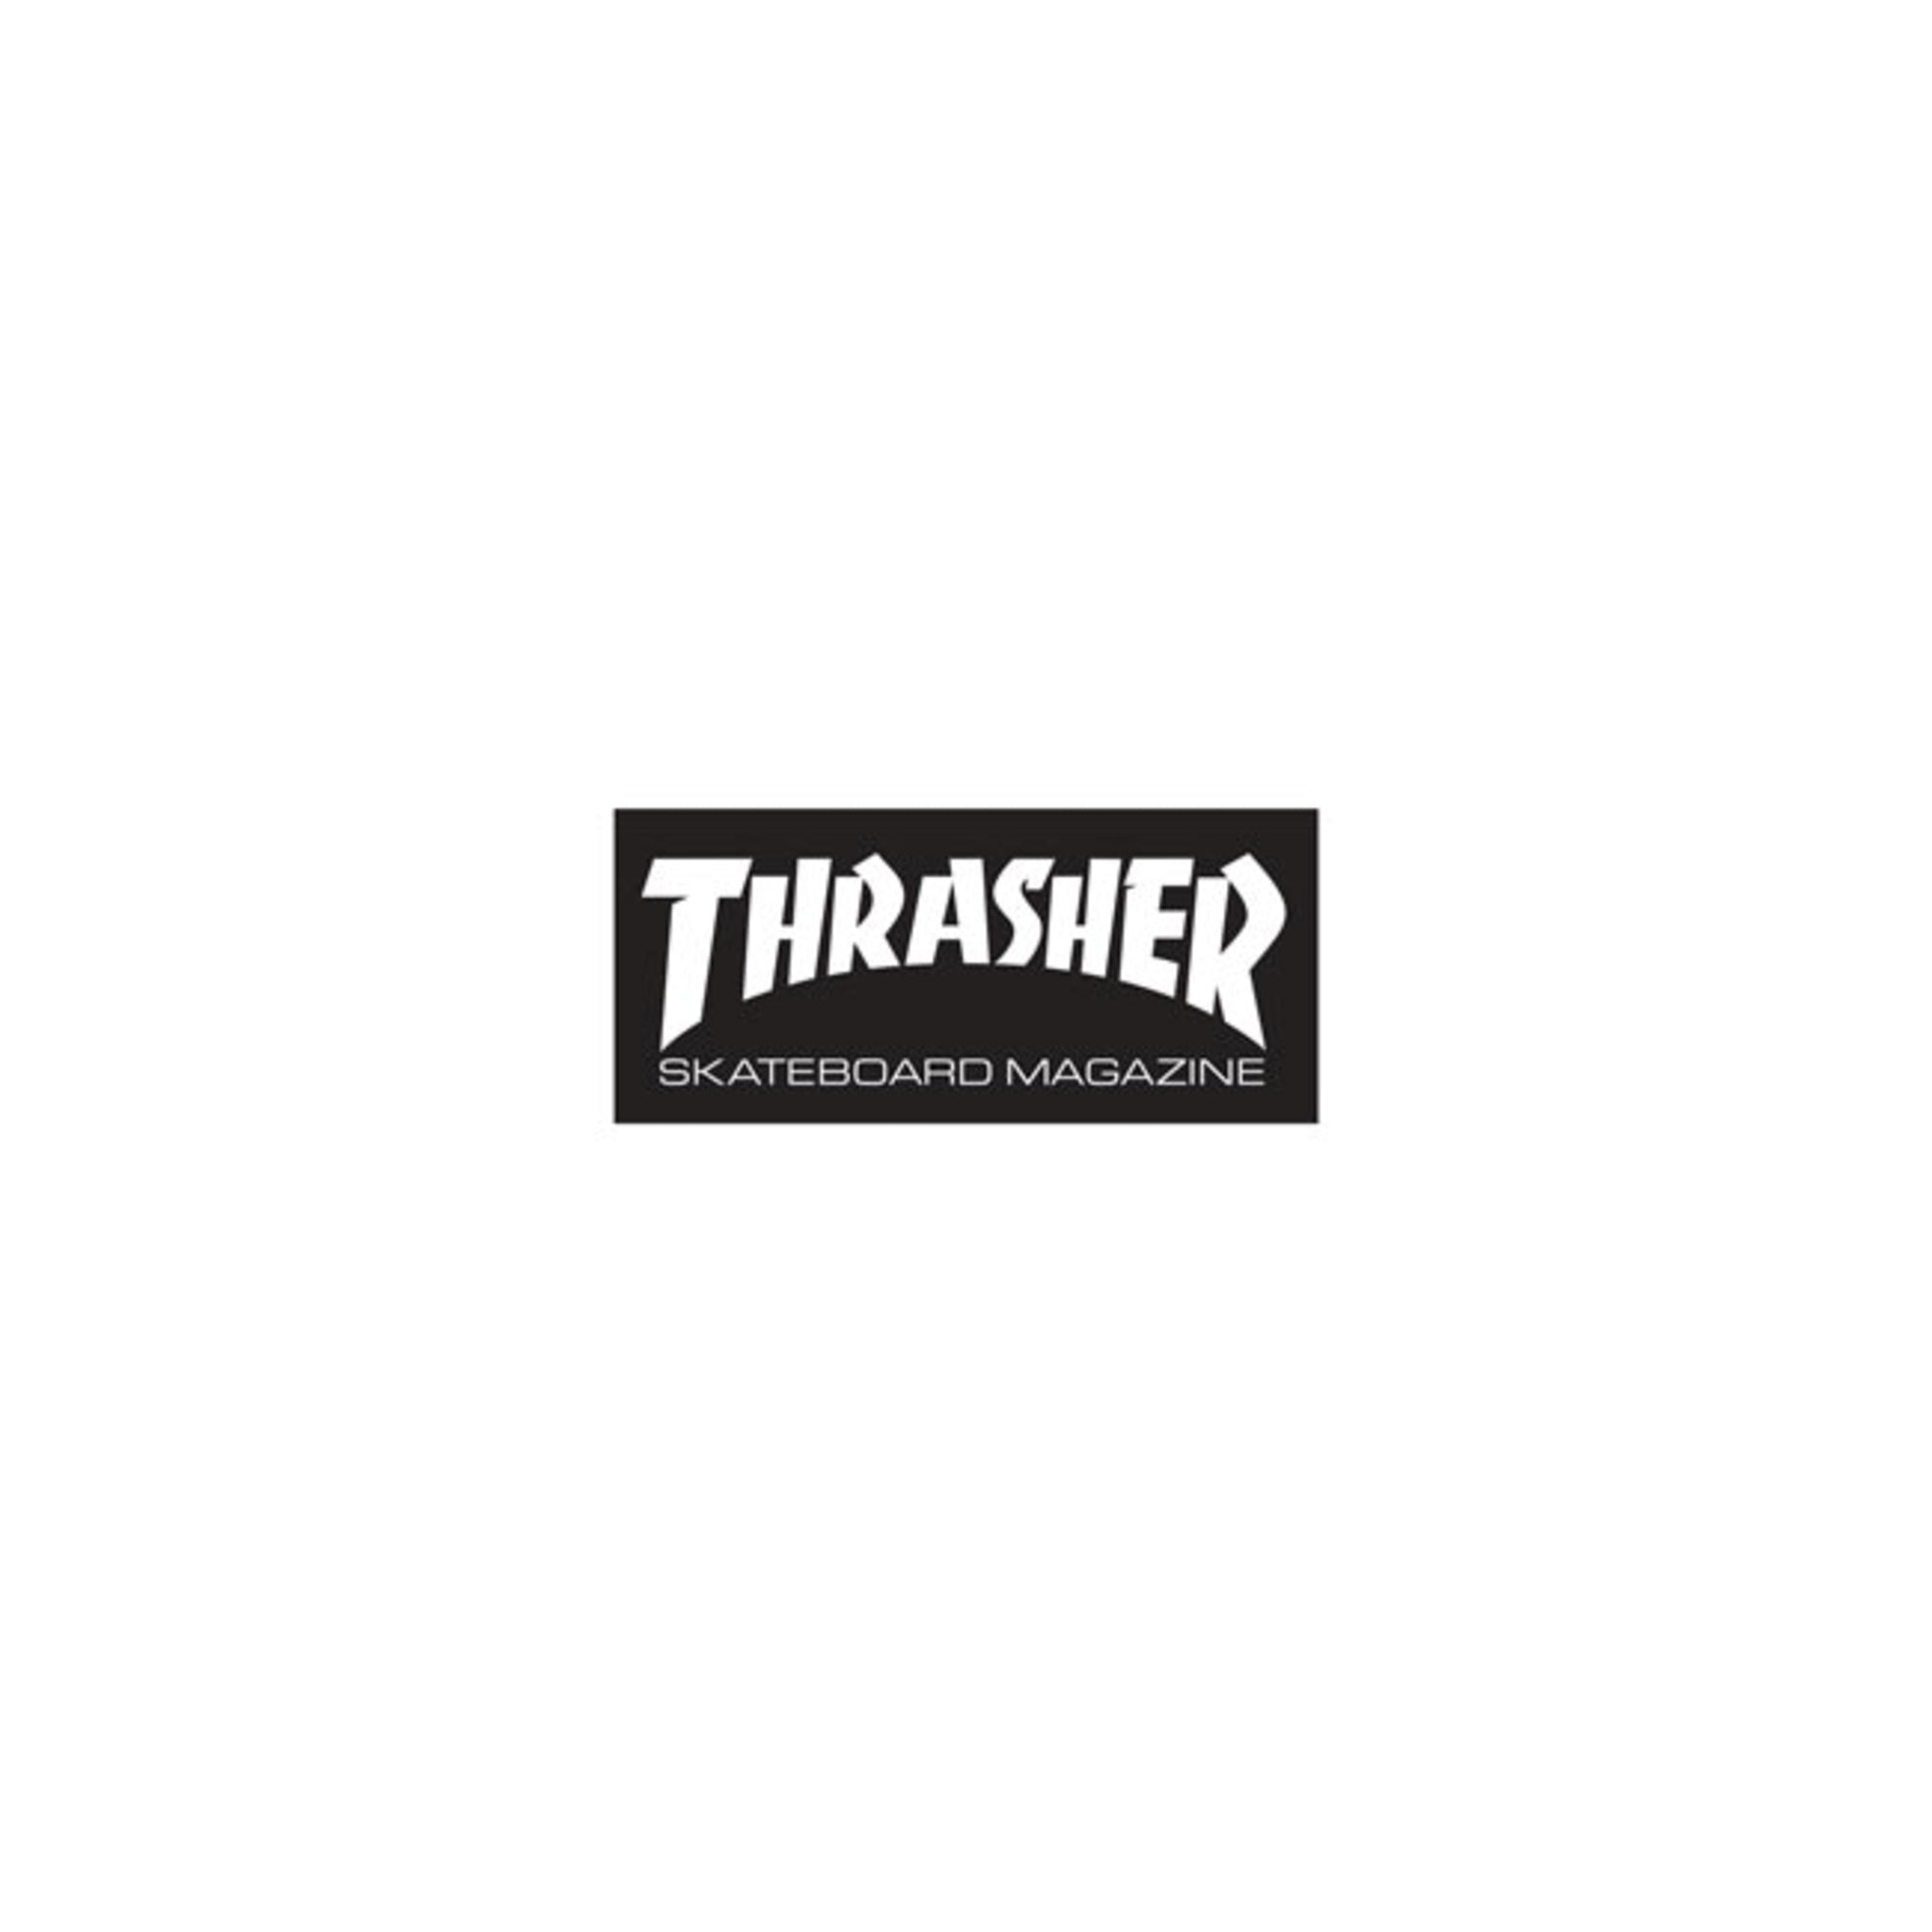 Thrasher Magazine Classic Logo Small Decal